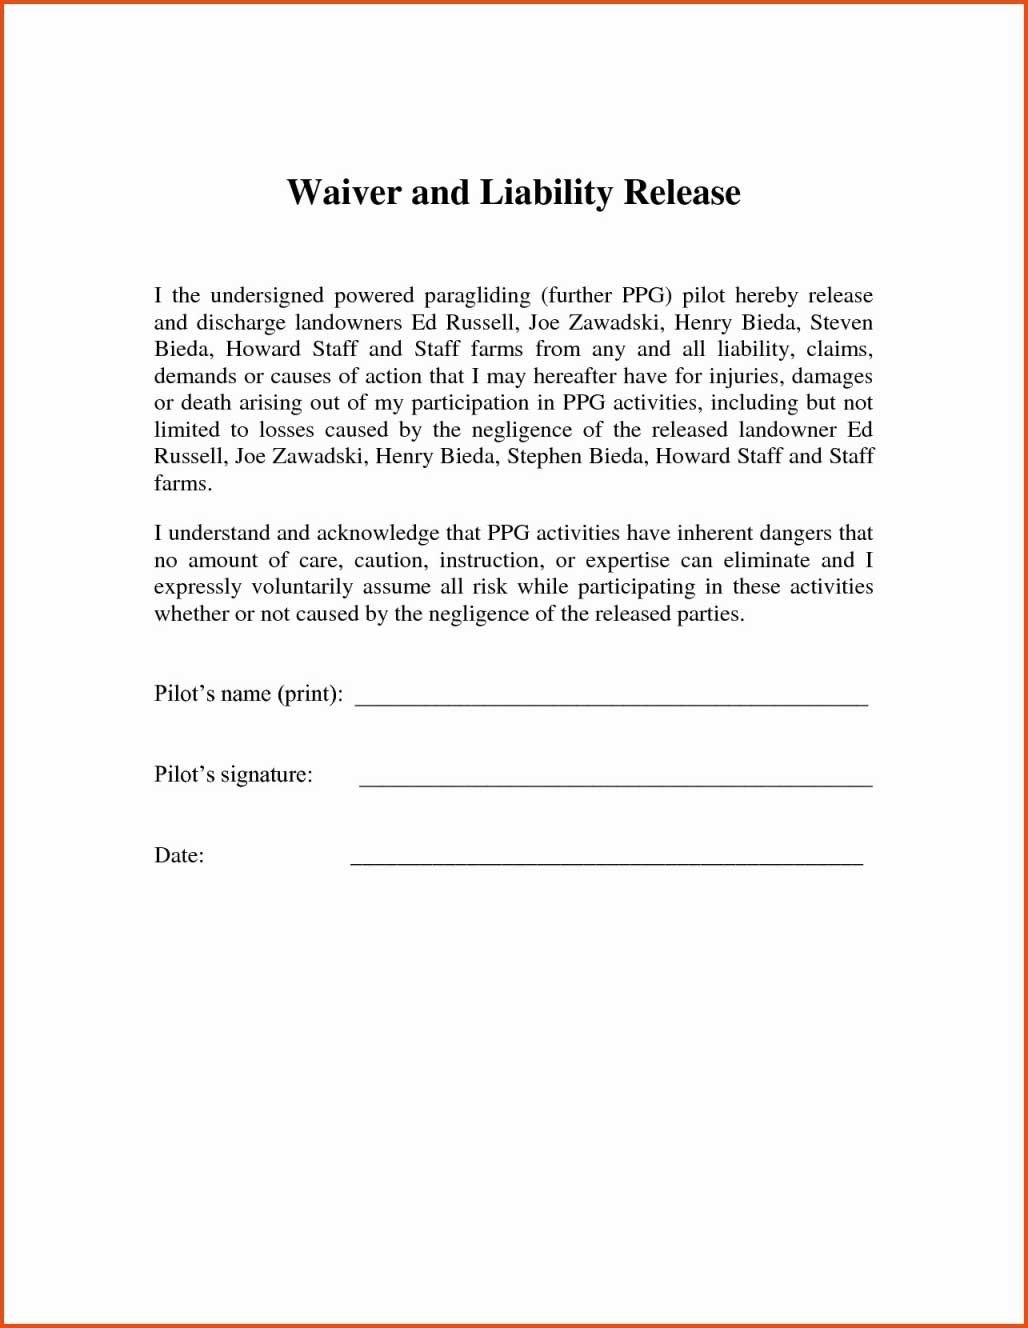 Patient Release Form Template Protected Health Information Life